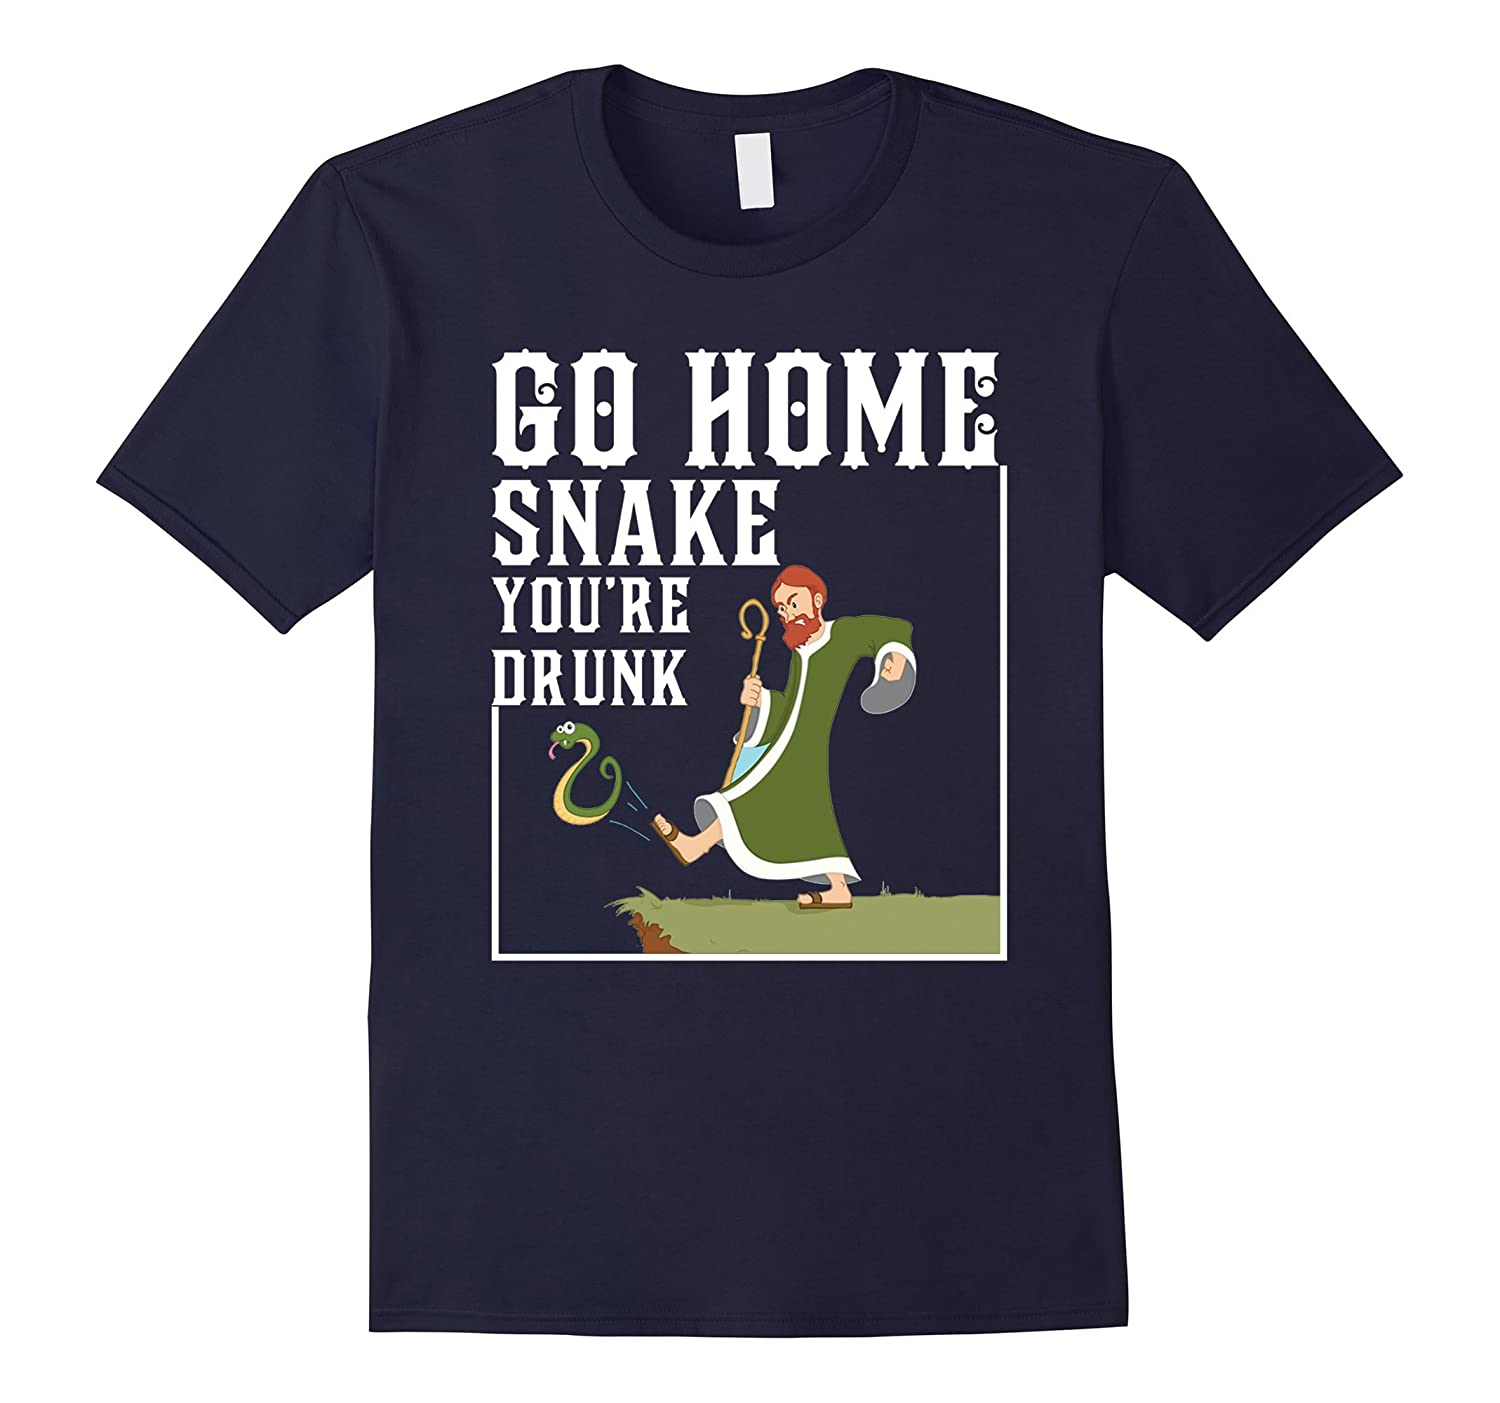 Go home sname youre drunk T Shirt-TD